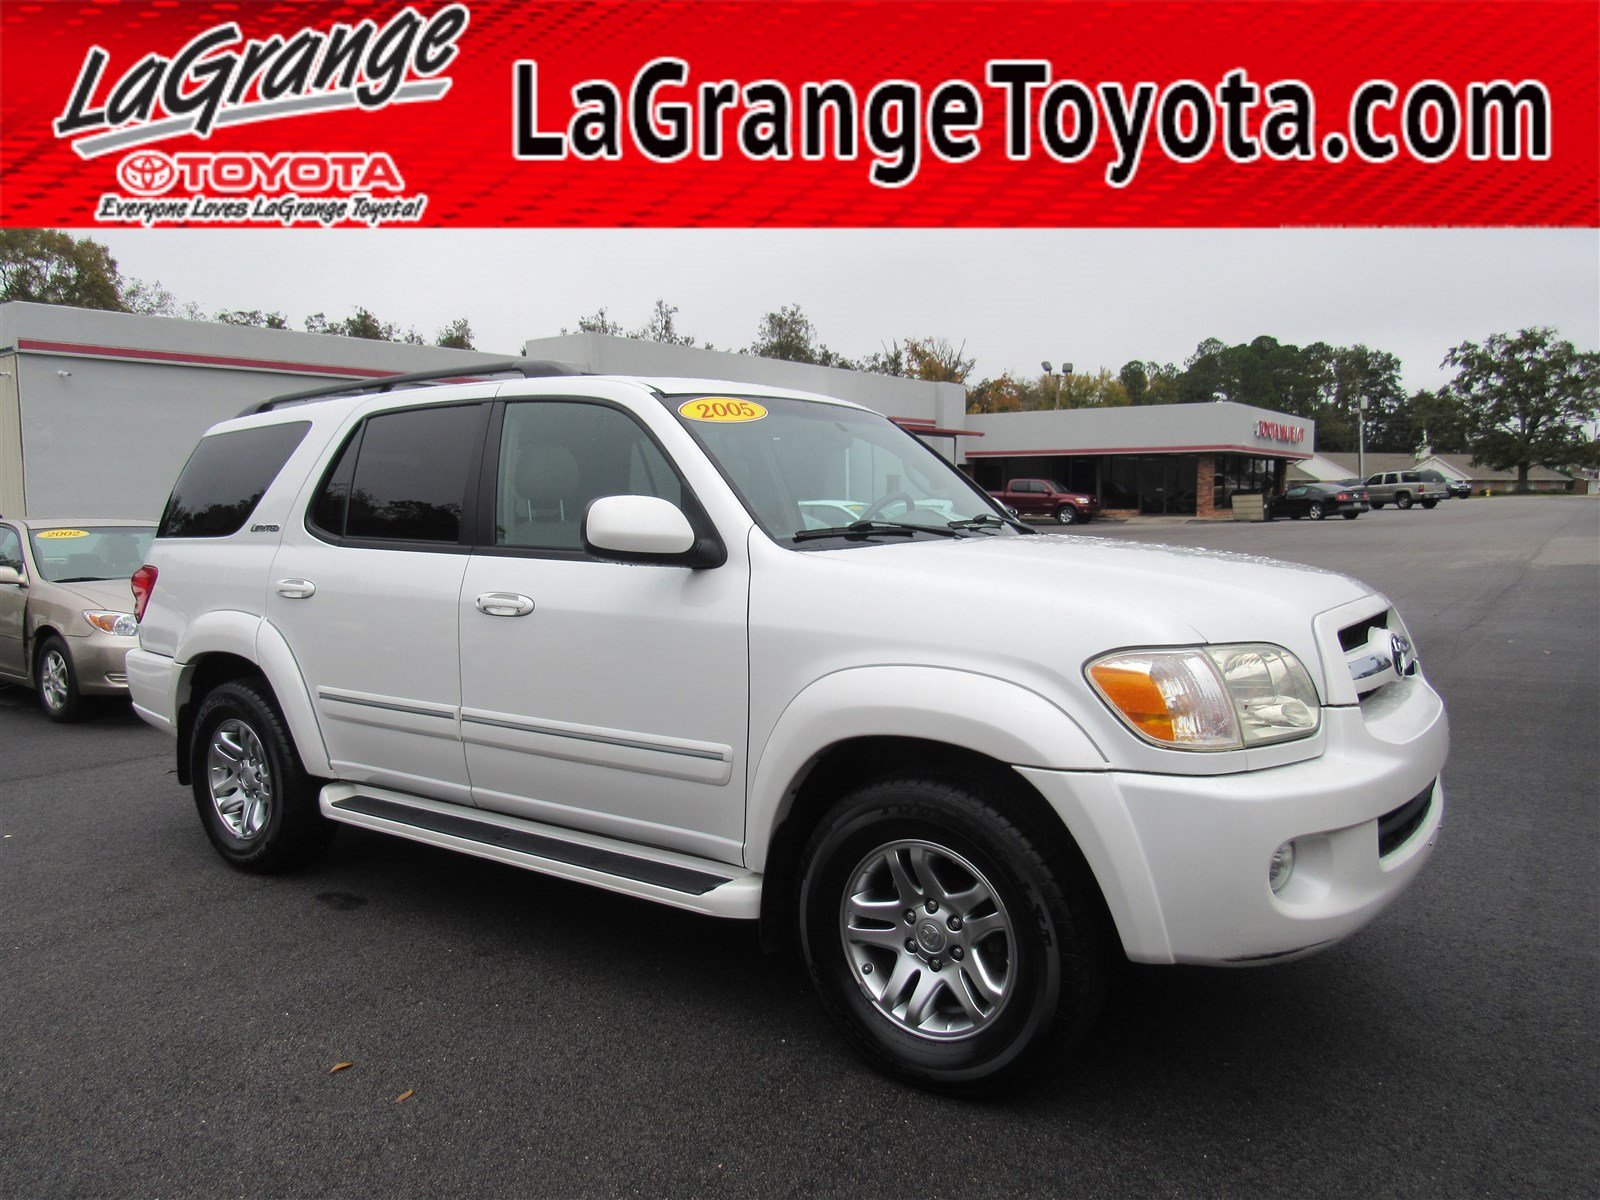 Pre-Owned 2005 Toyota Sequoia 4dr Limited